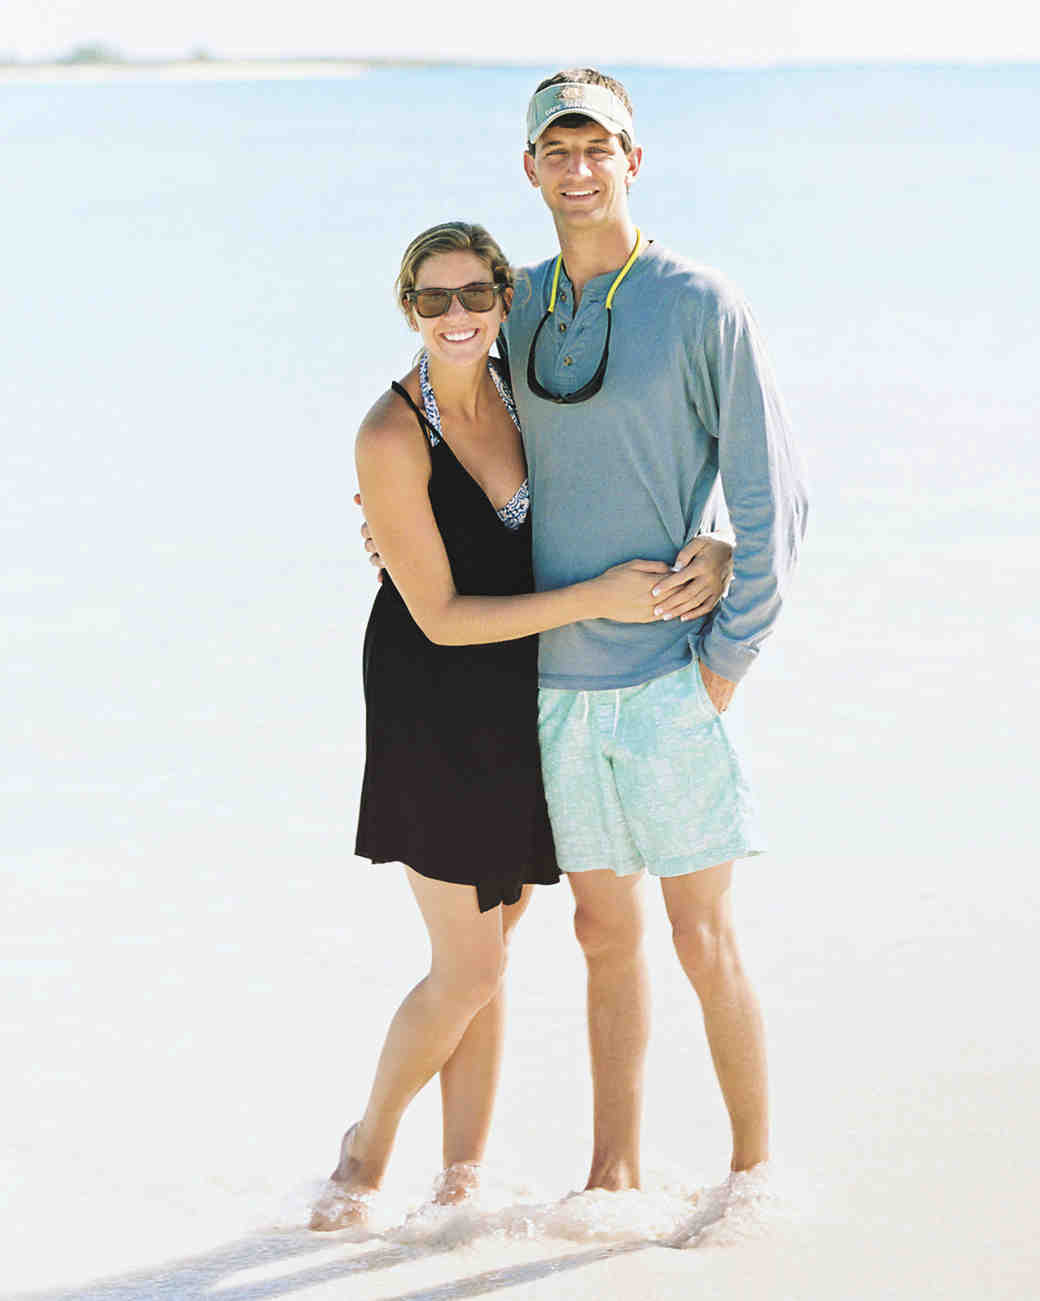 Sarah and William's Laid-Back Honeymoon in the Bahamas